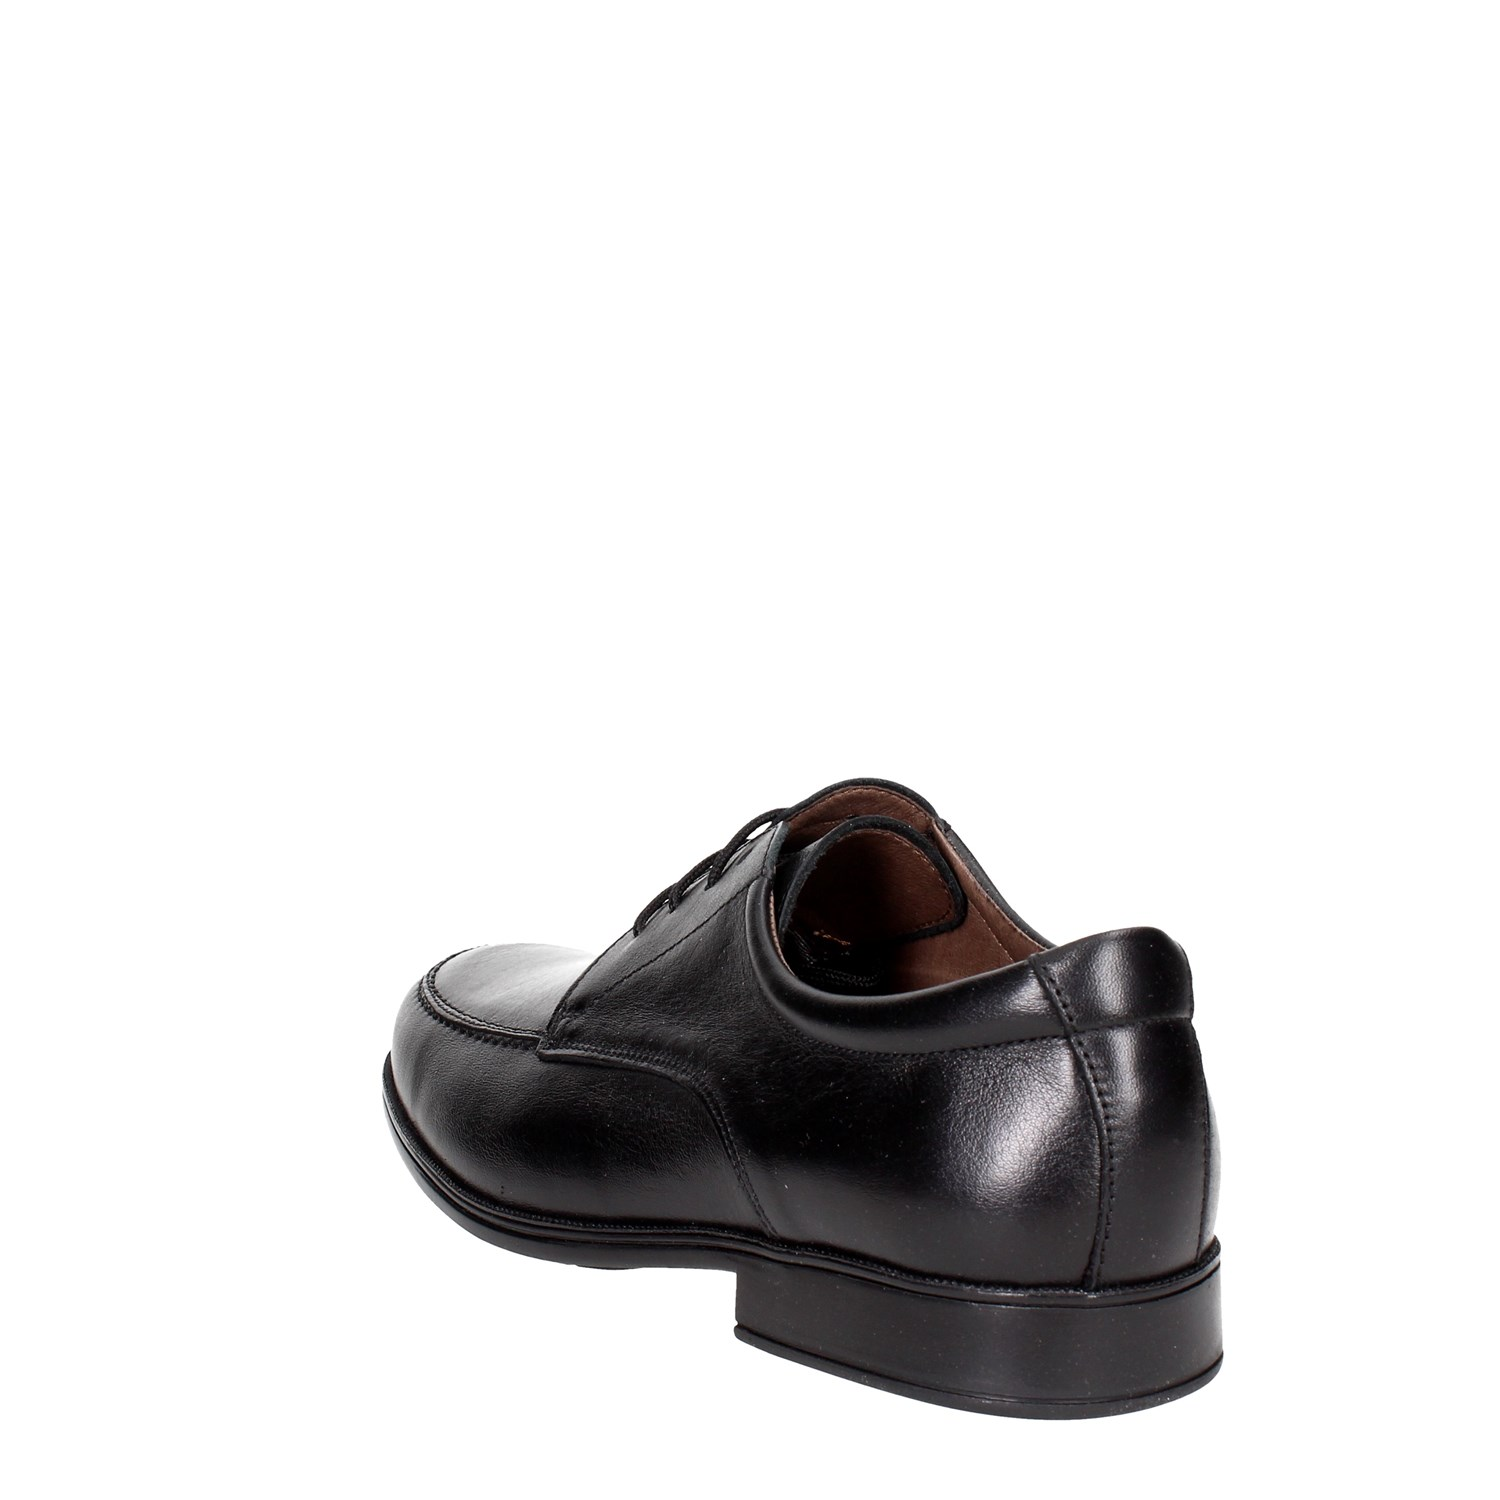 Comfort Schuhes Man  Man Schuhes Baerchi 3735 Fall/Winter 966c10